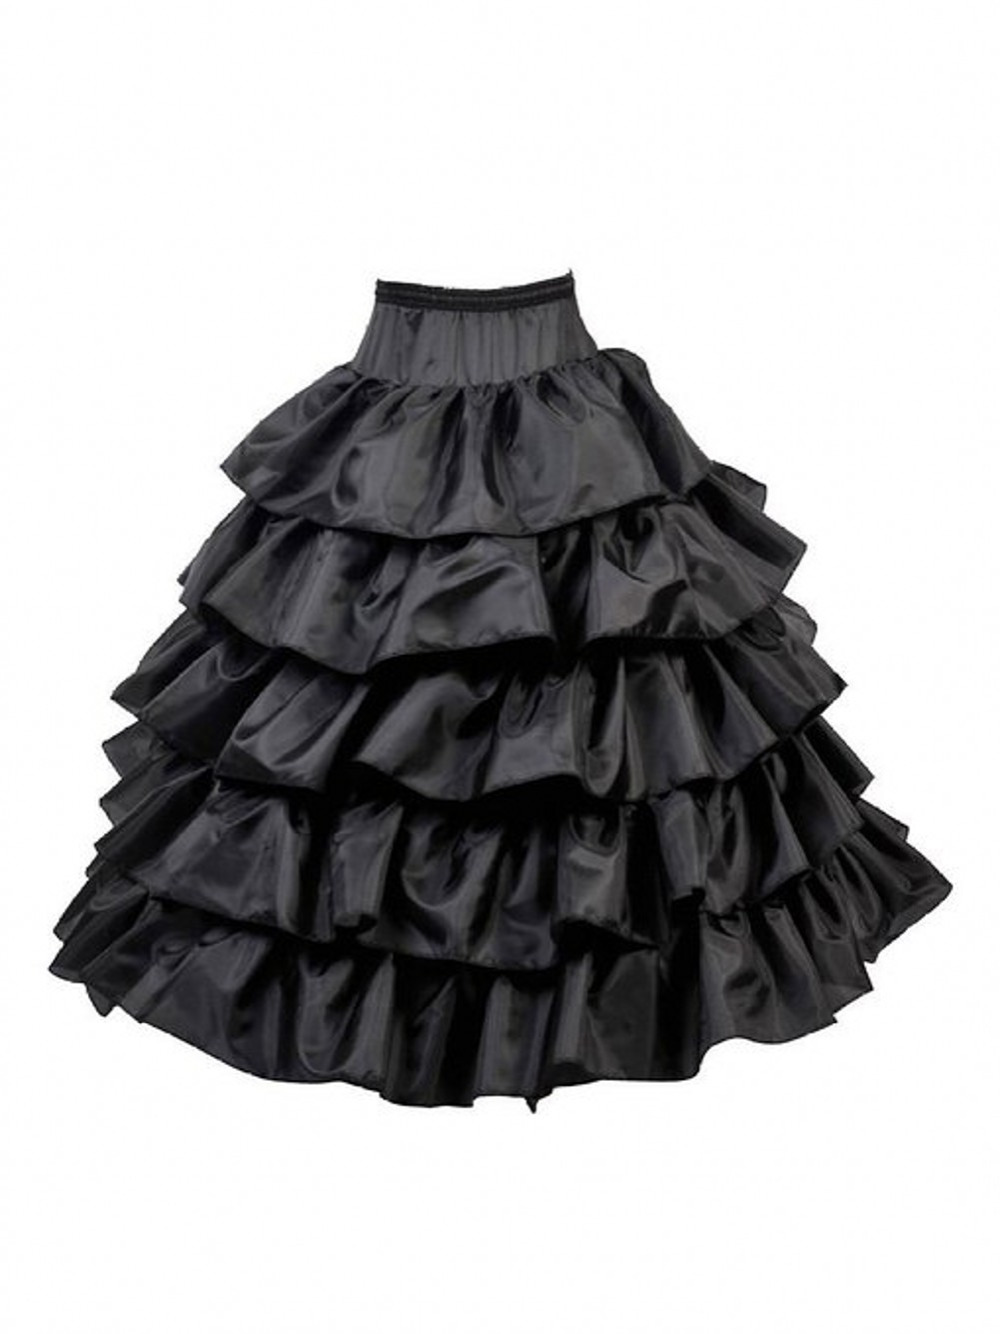 c22dd9c90ac80 Get Quotations · Top Quality black tulle ball gown petticoats for wedding  dress complementos boda